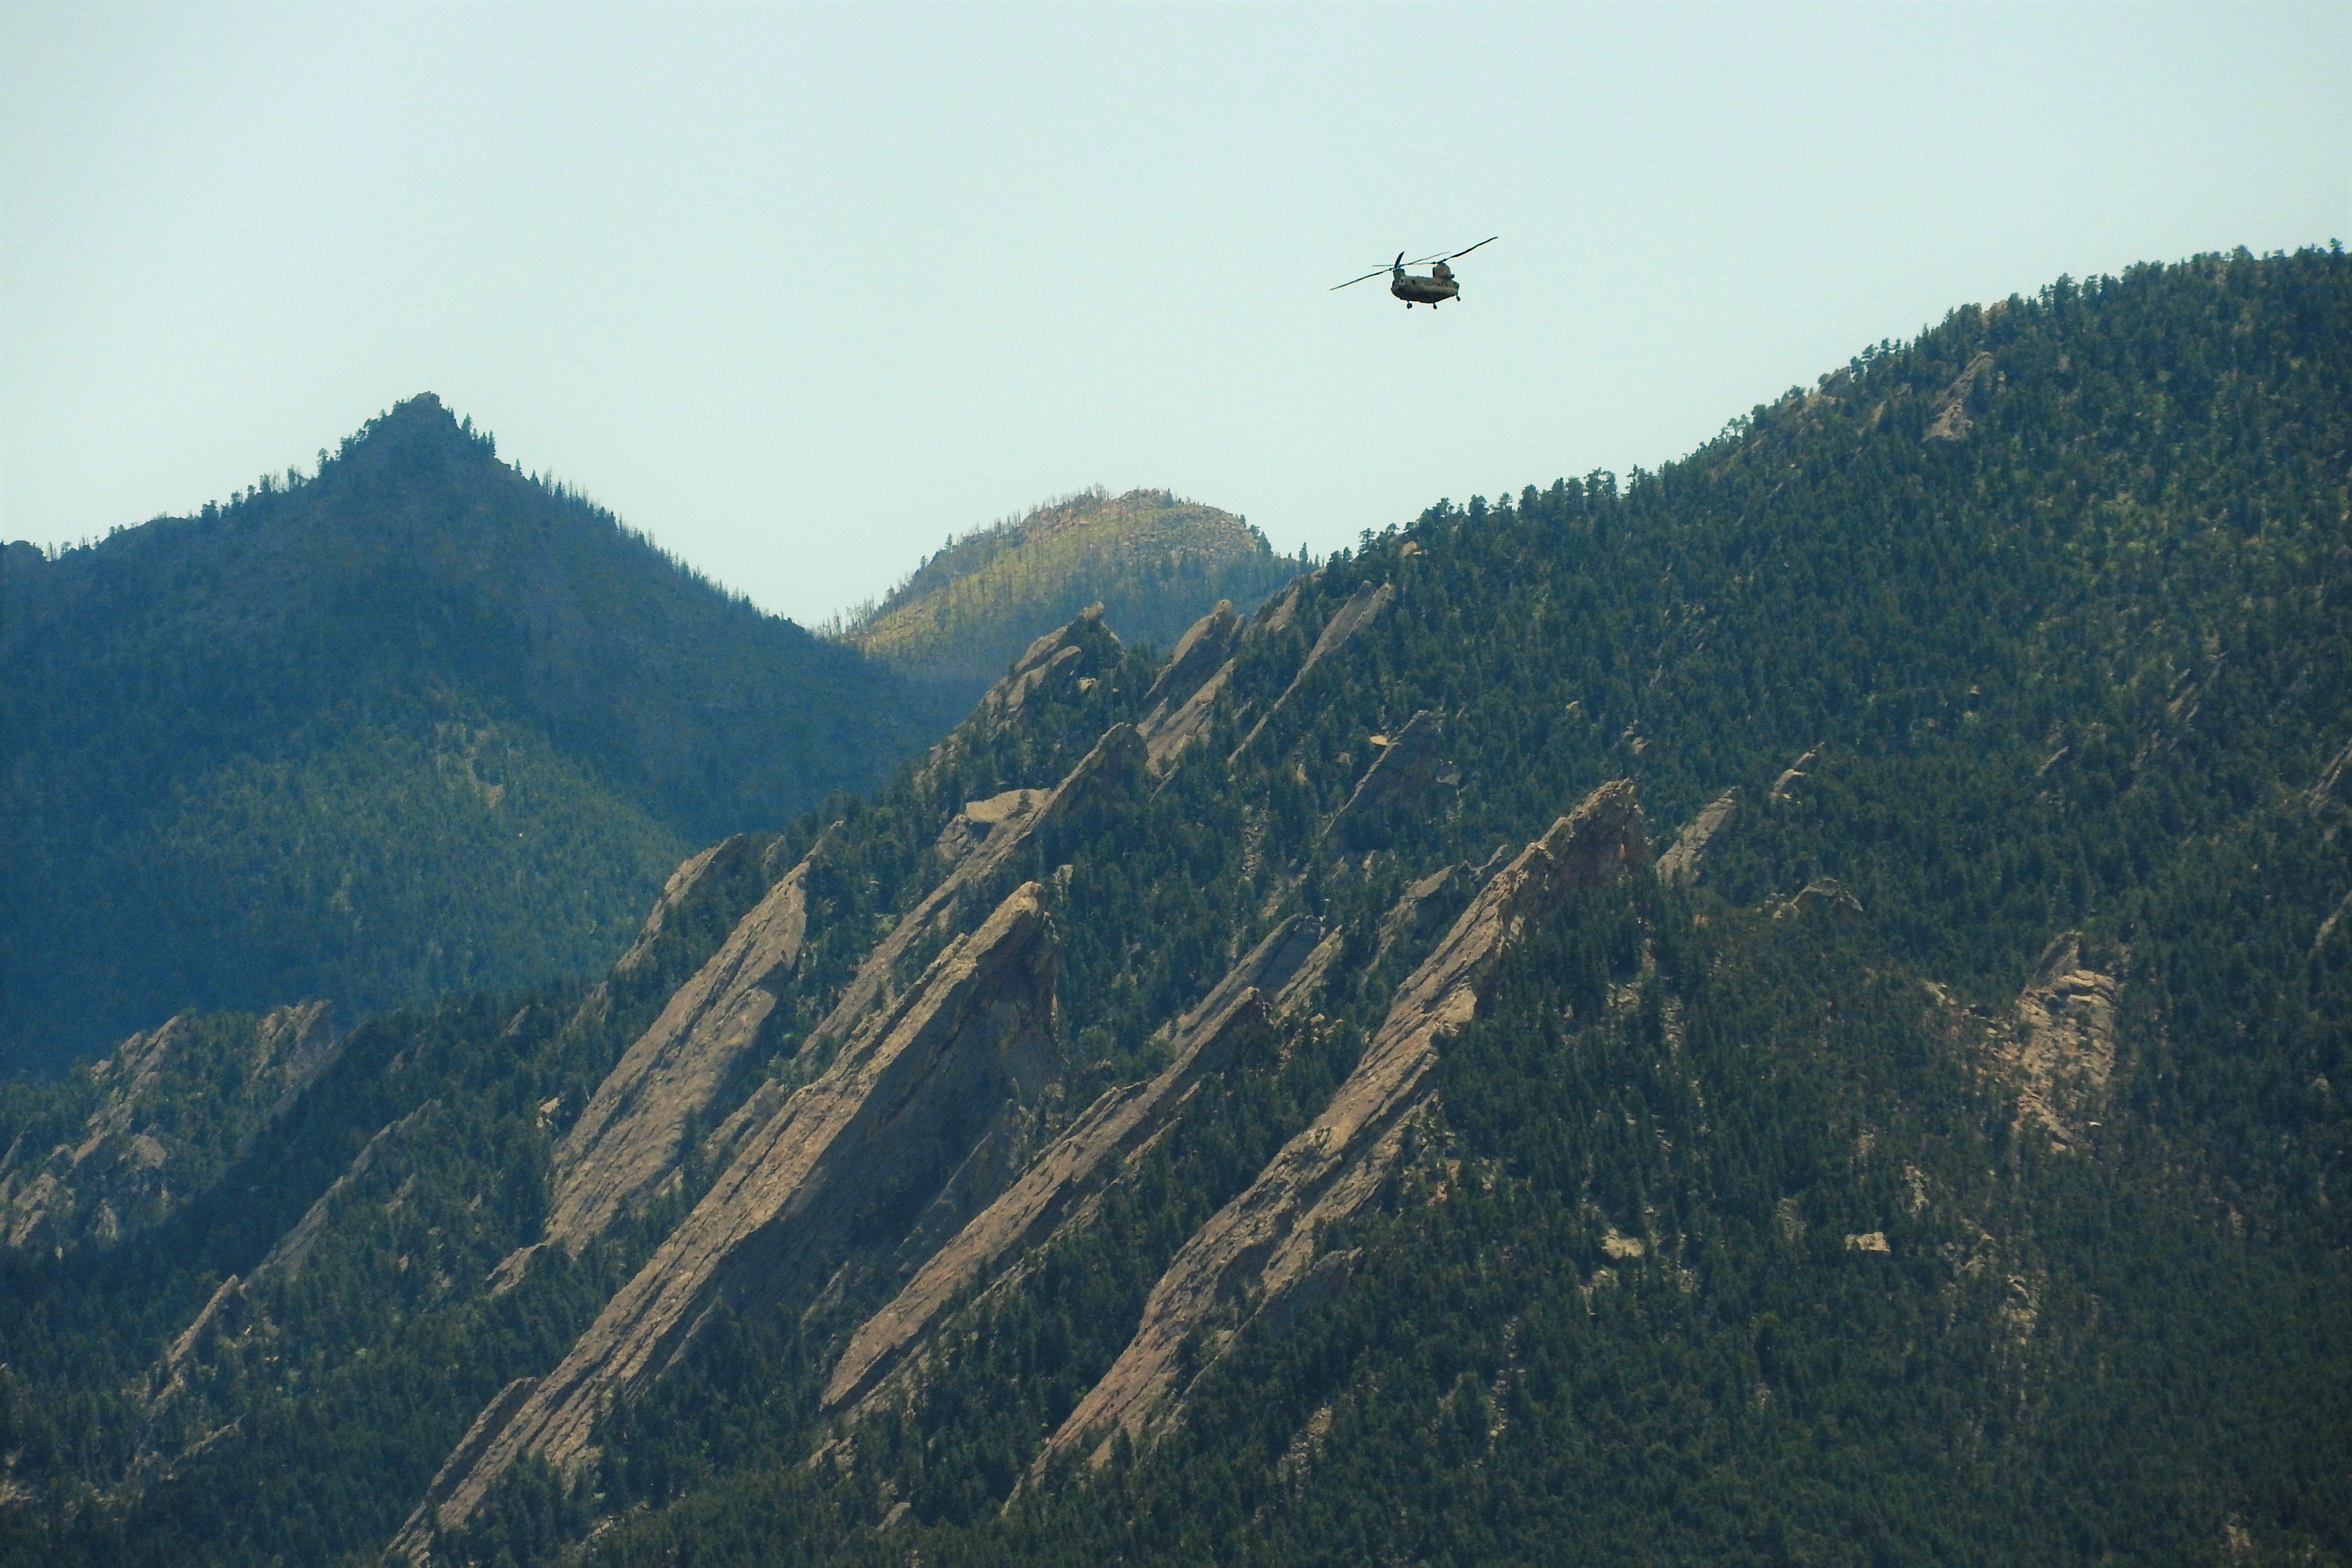 Chinook making a return flight past the Flatirons from the Cold Spring Fire.